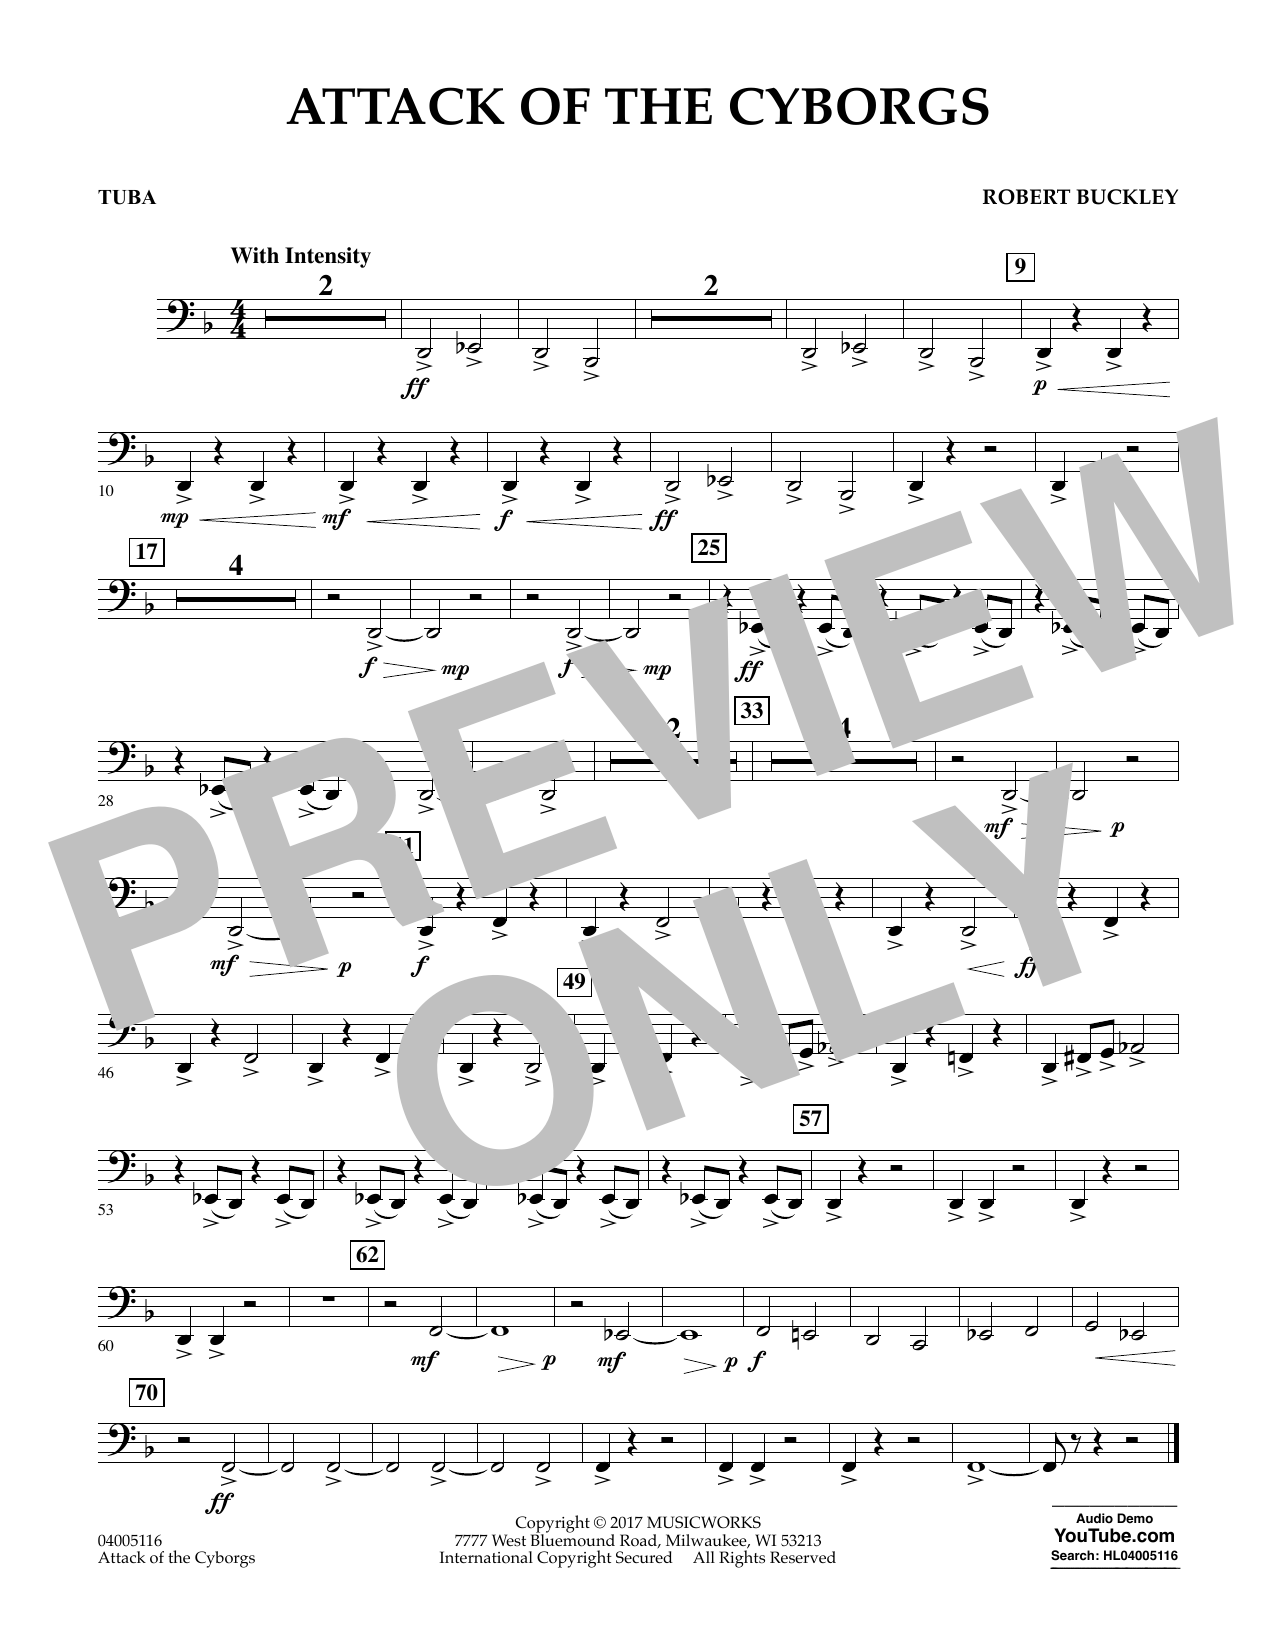 Robert Buckley Attack of the Cyborgs - Tuba sheet music notes and chords. Download Printable PDF.